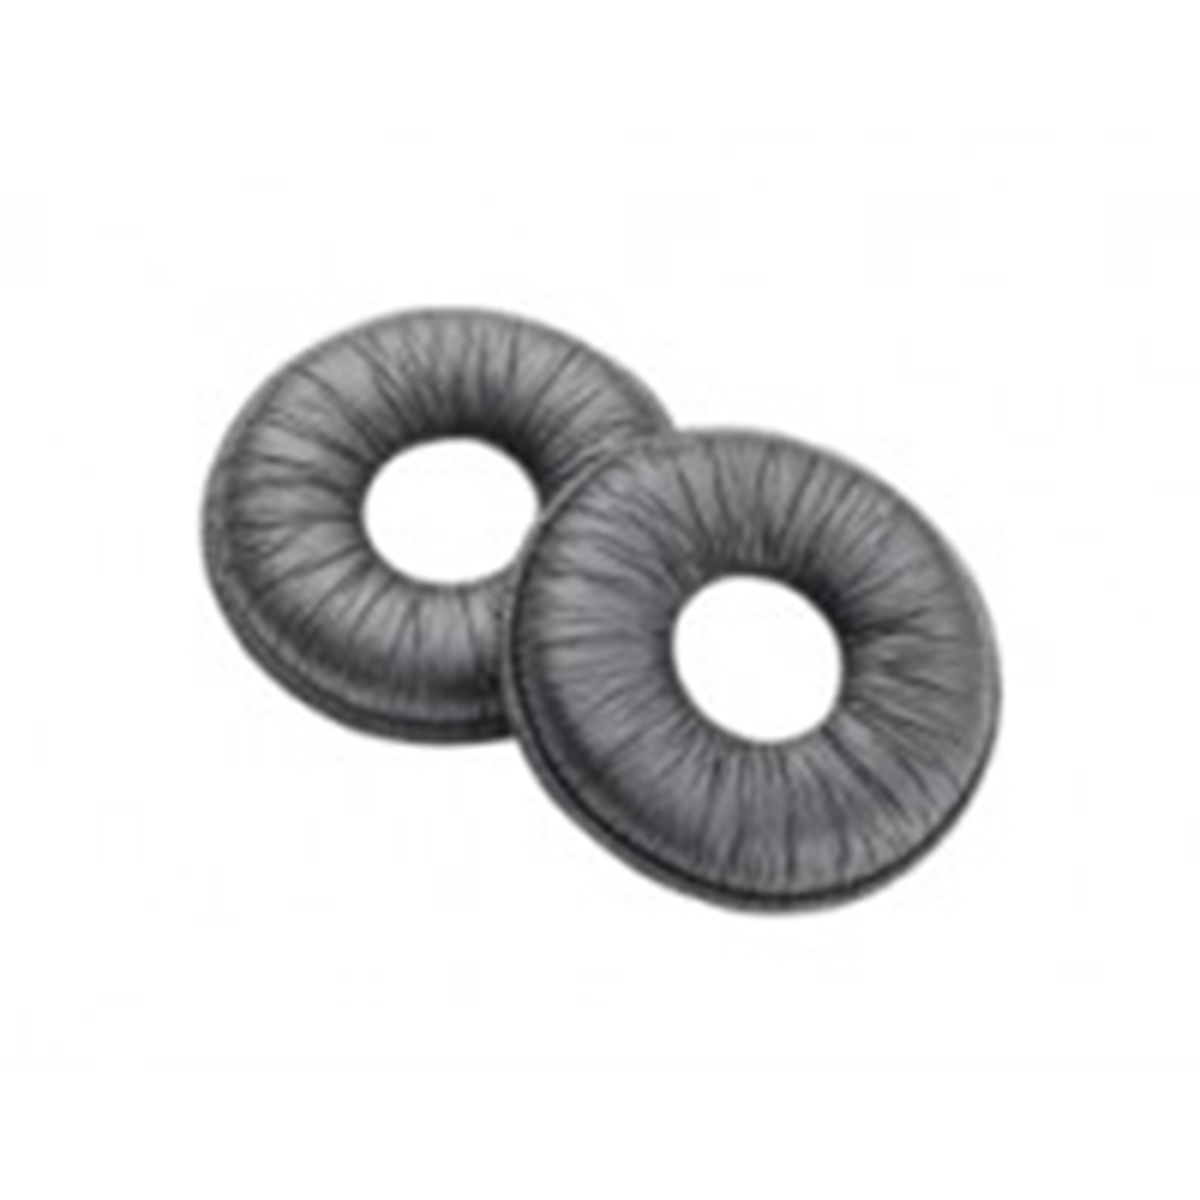 Plantronics 71782-01 Leatherette Ear-Cushions Pack of 2